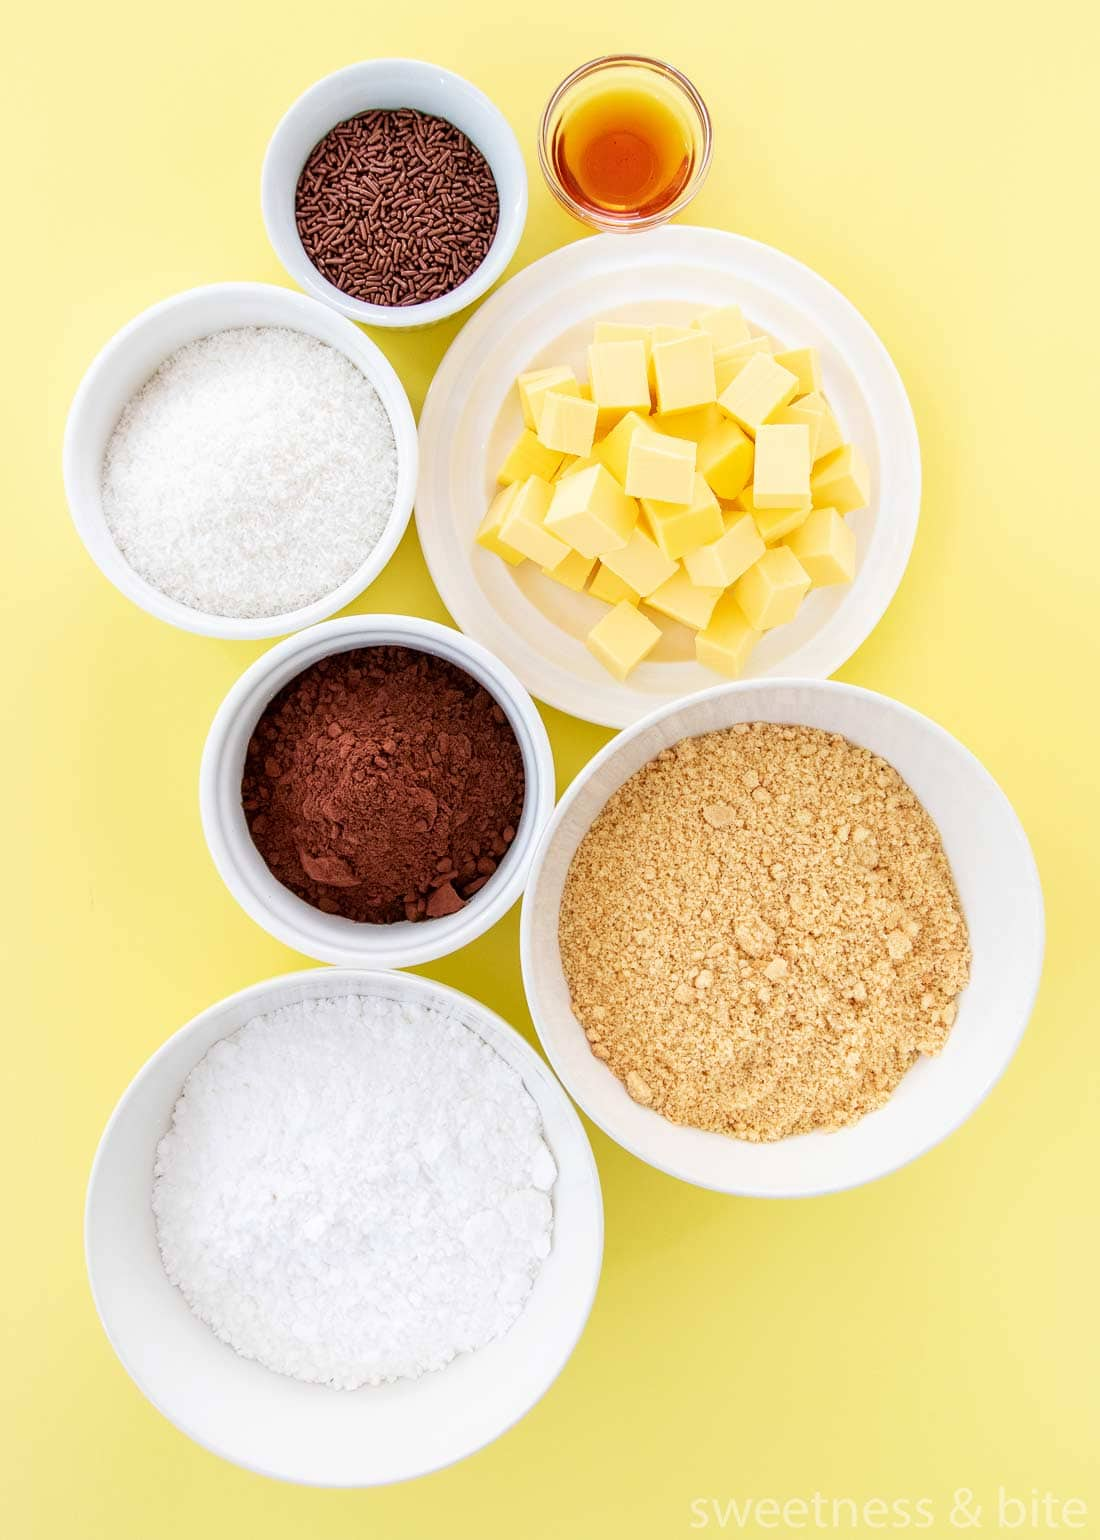 Chocolate coconut truffle ingredients - crushed cookies, icing sugar, butter, cocoa, coconut, vanilla and sprinkles